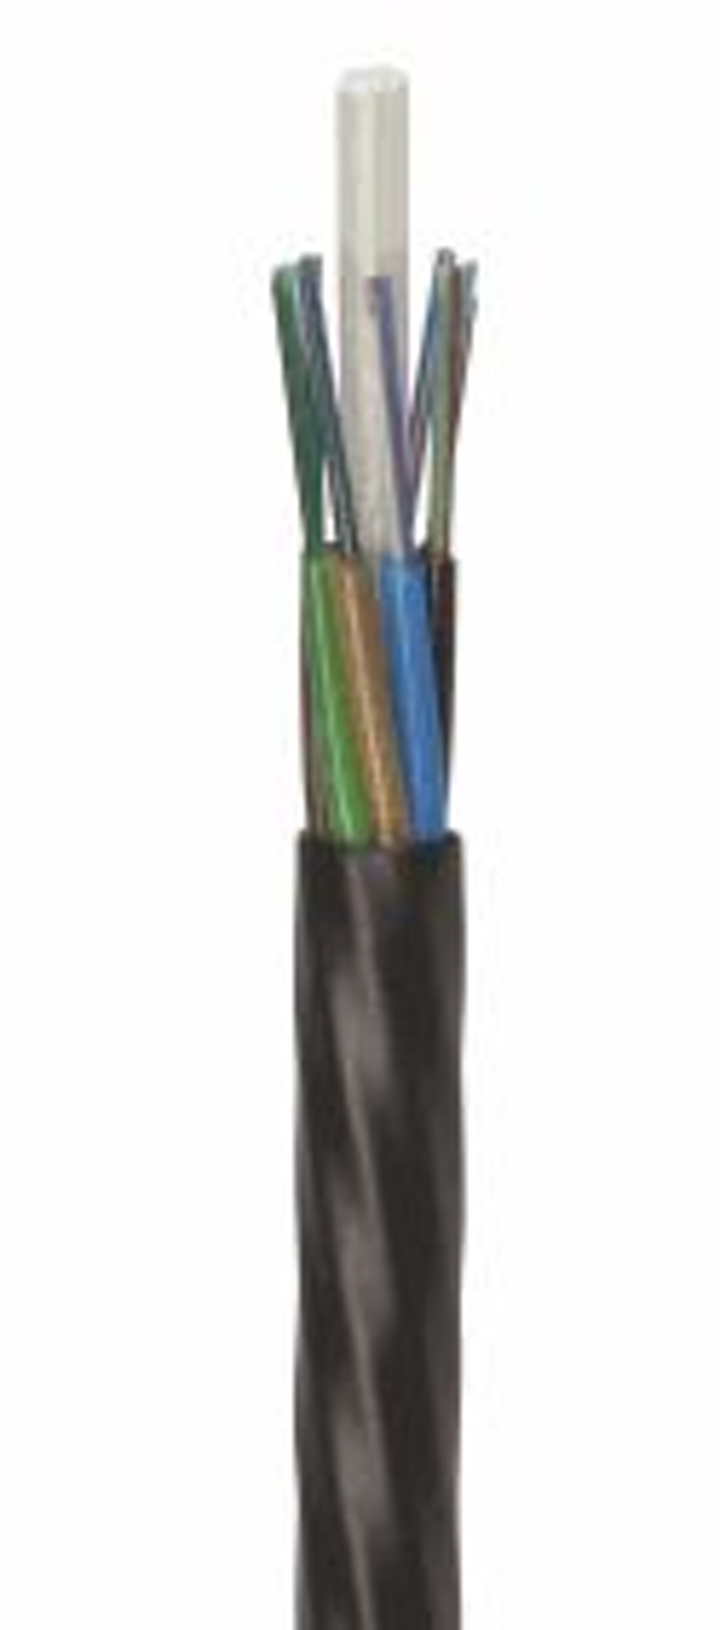 AFL says OSP MicroCore cable now accommodates up to 432 fibers